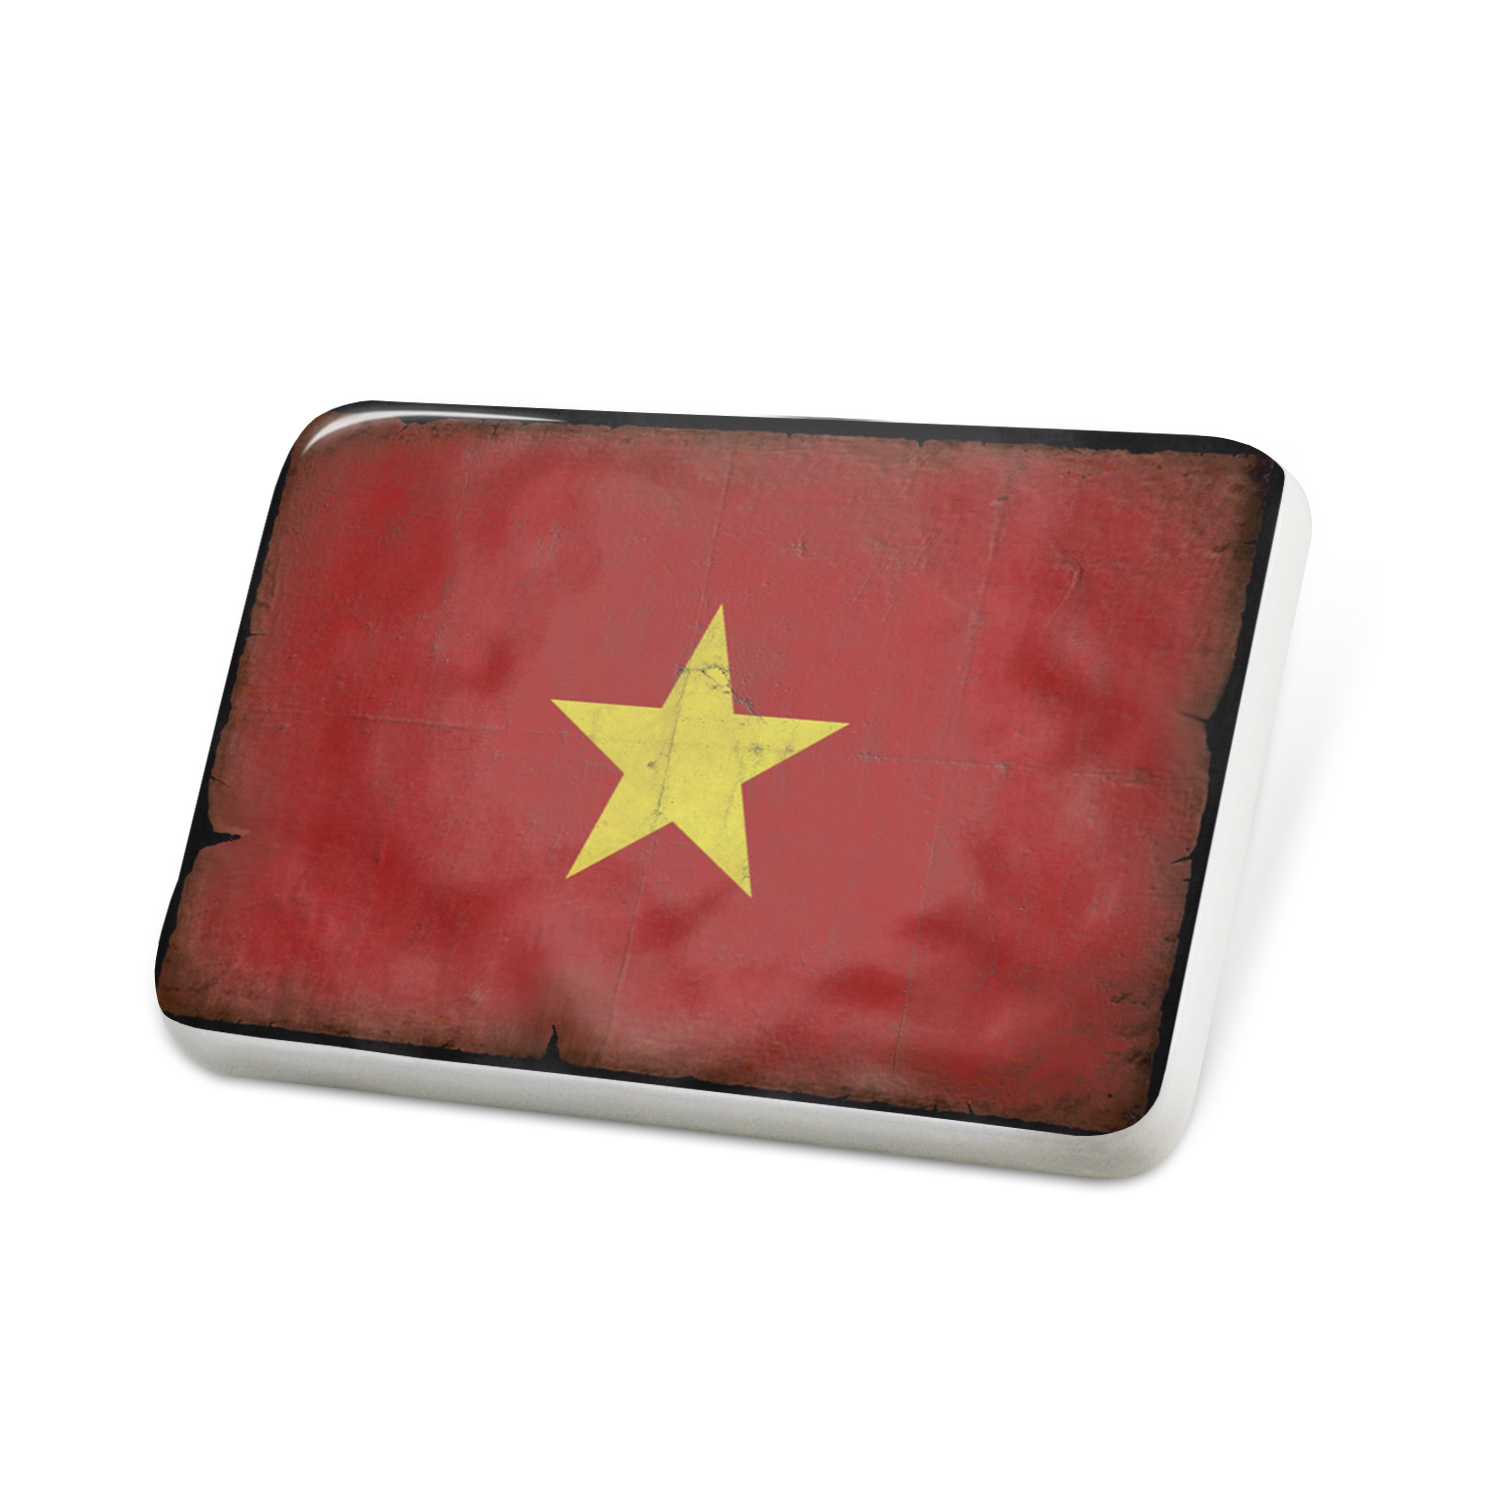 Porcelein Pin Vietnam Flag with a vintage look Lapel Badge � NEONBLOND by NEONBLOND